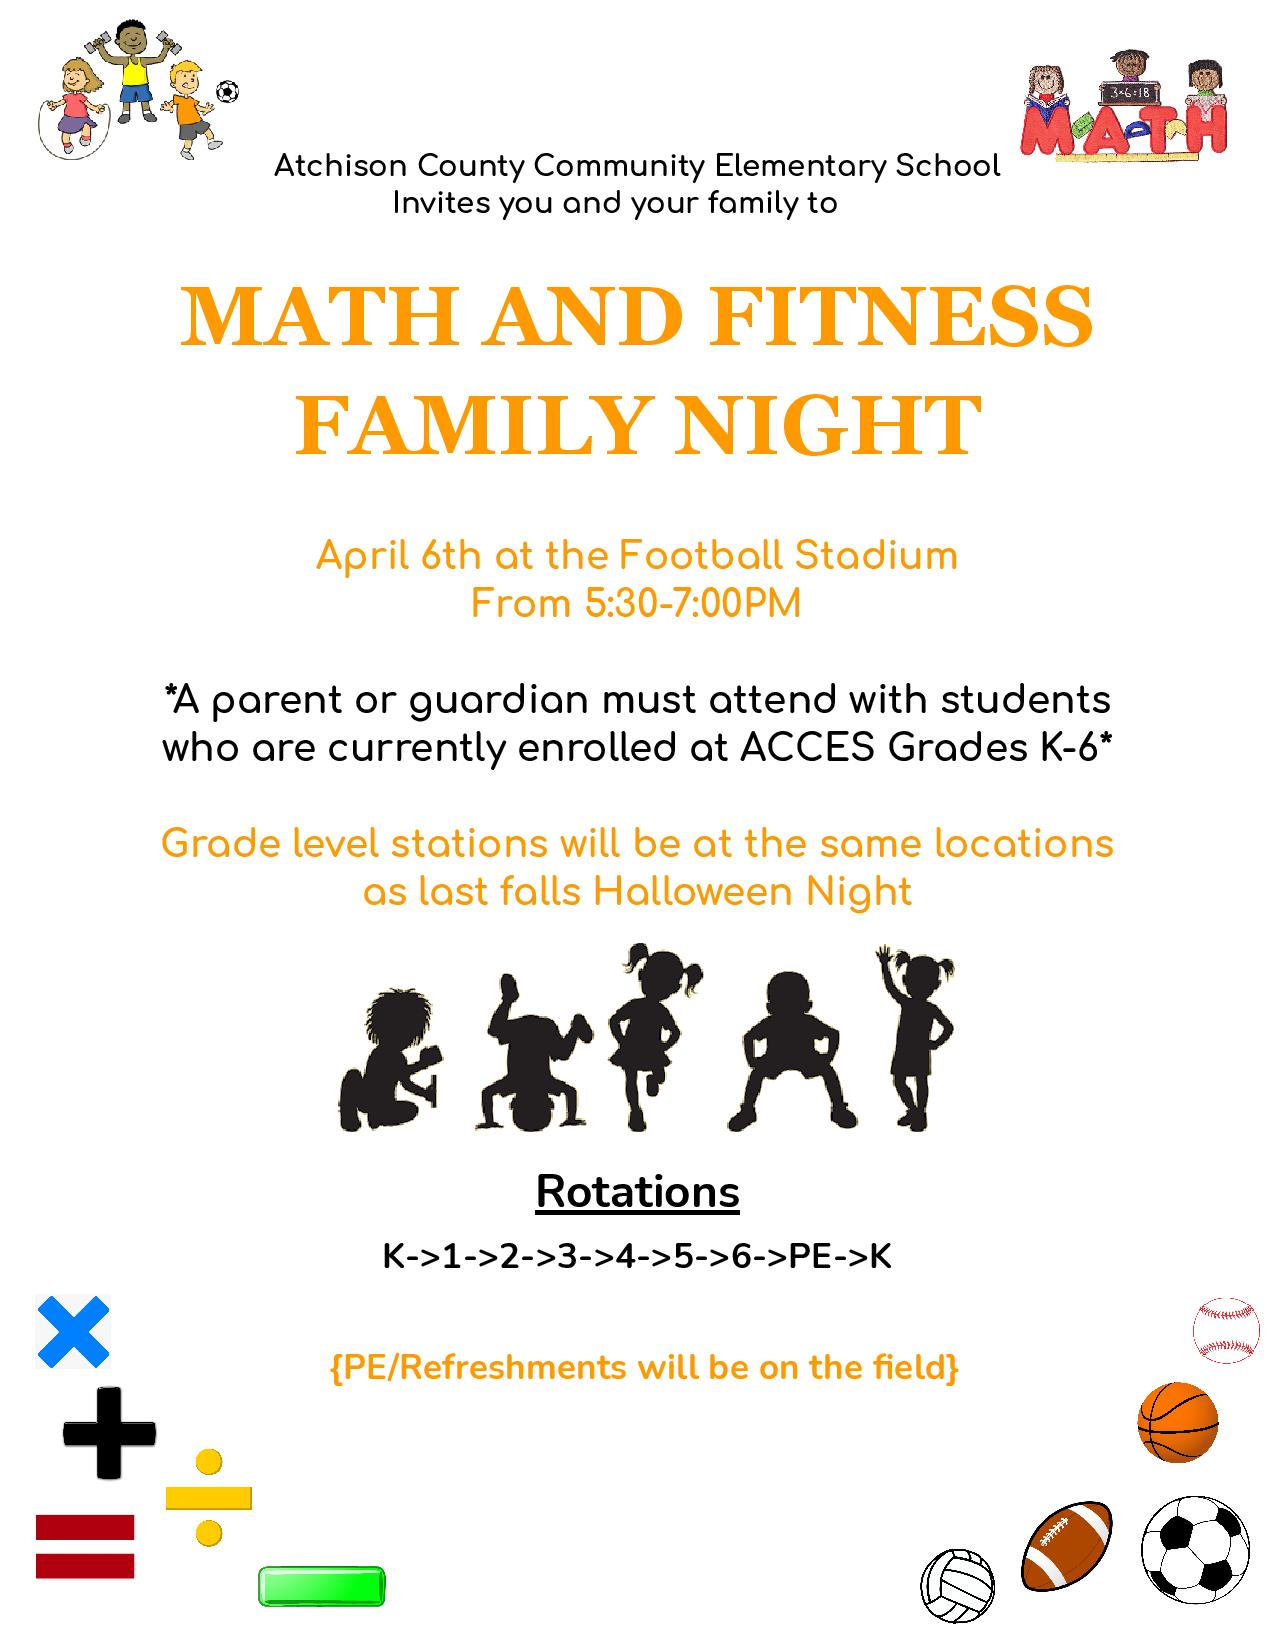 Add this to your calendar!! Tuesday, April 6th - Elementary Math & Fitness Night!